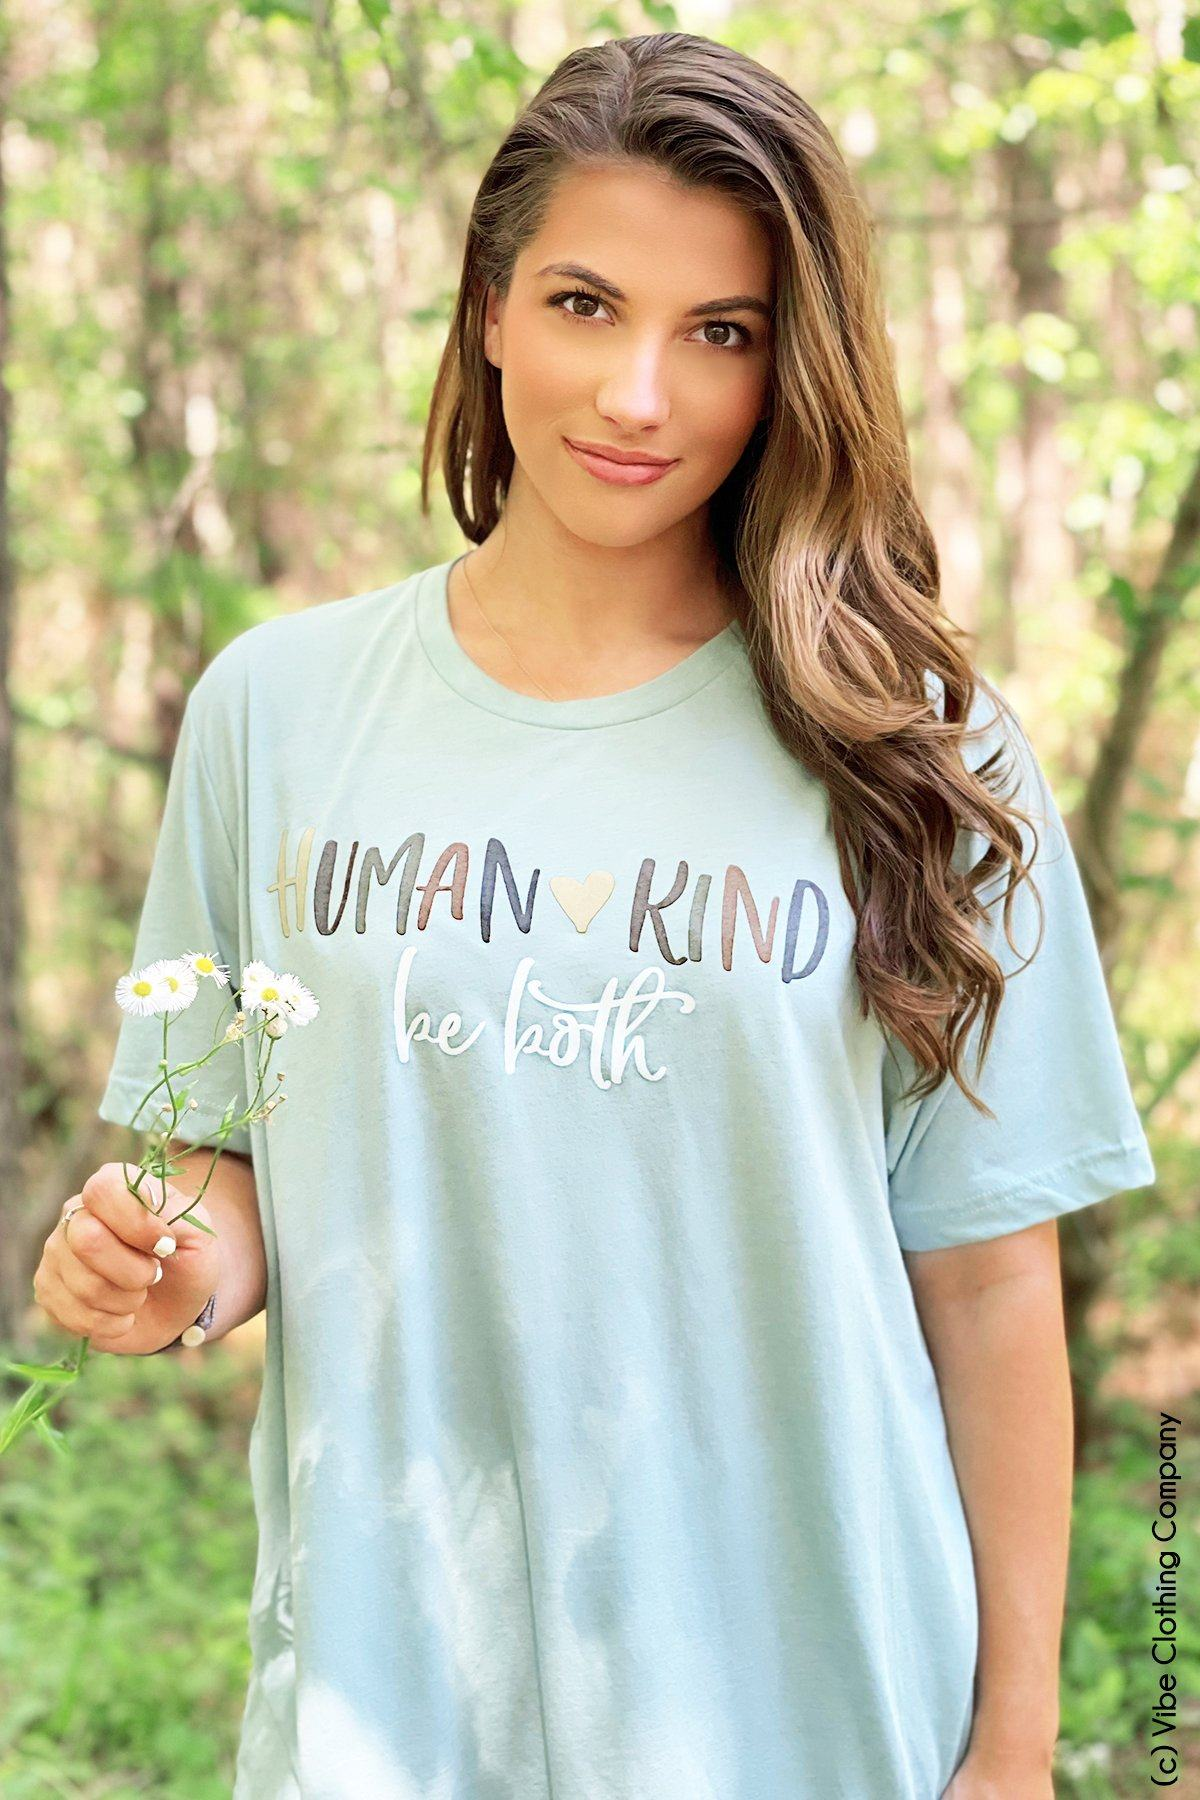 Human + Kind Graphic Tee graphic tees Mark tee